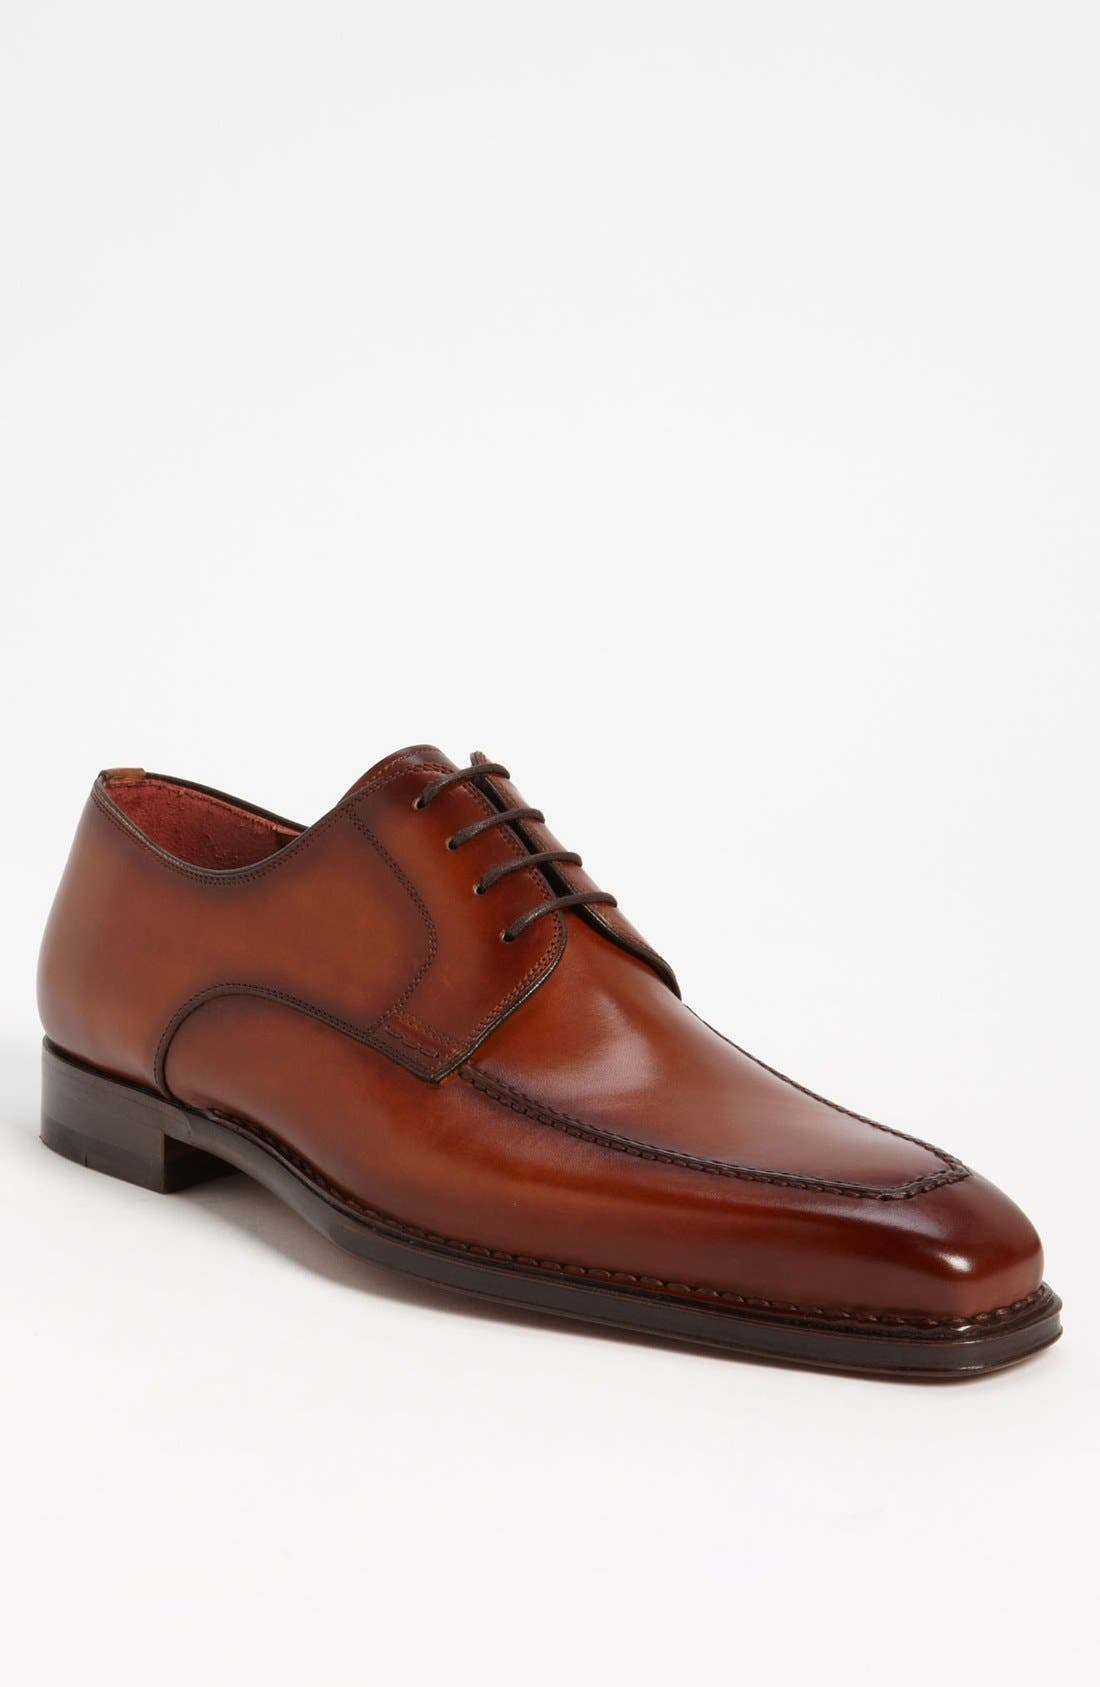 Alternate Image 1 Selected - Magnanni 'Seleccion - Ramon' Moc Toe Derby